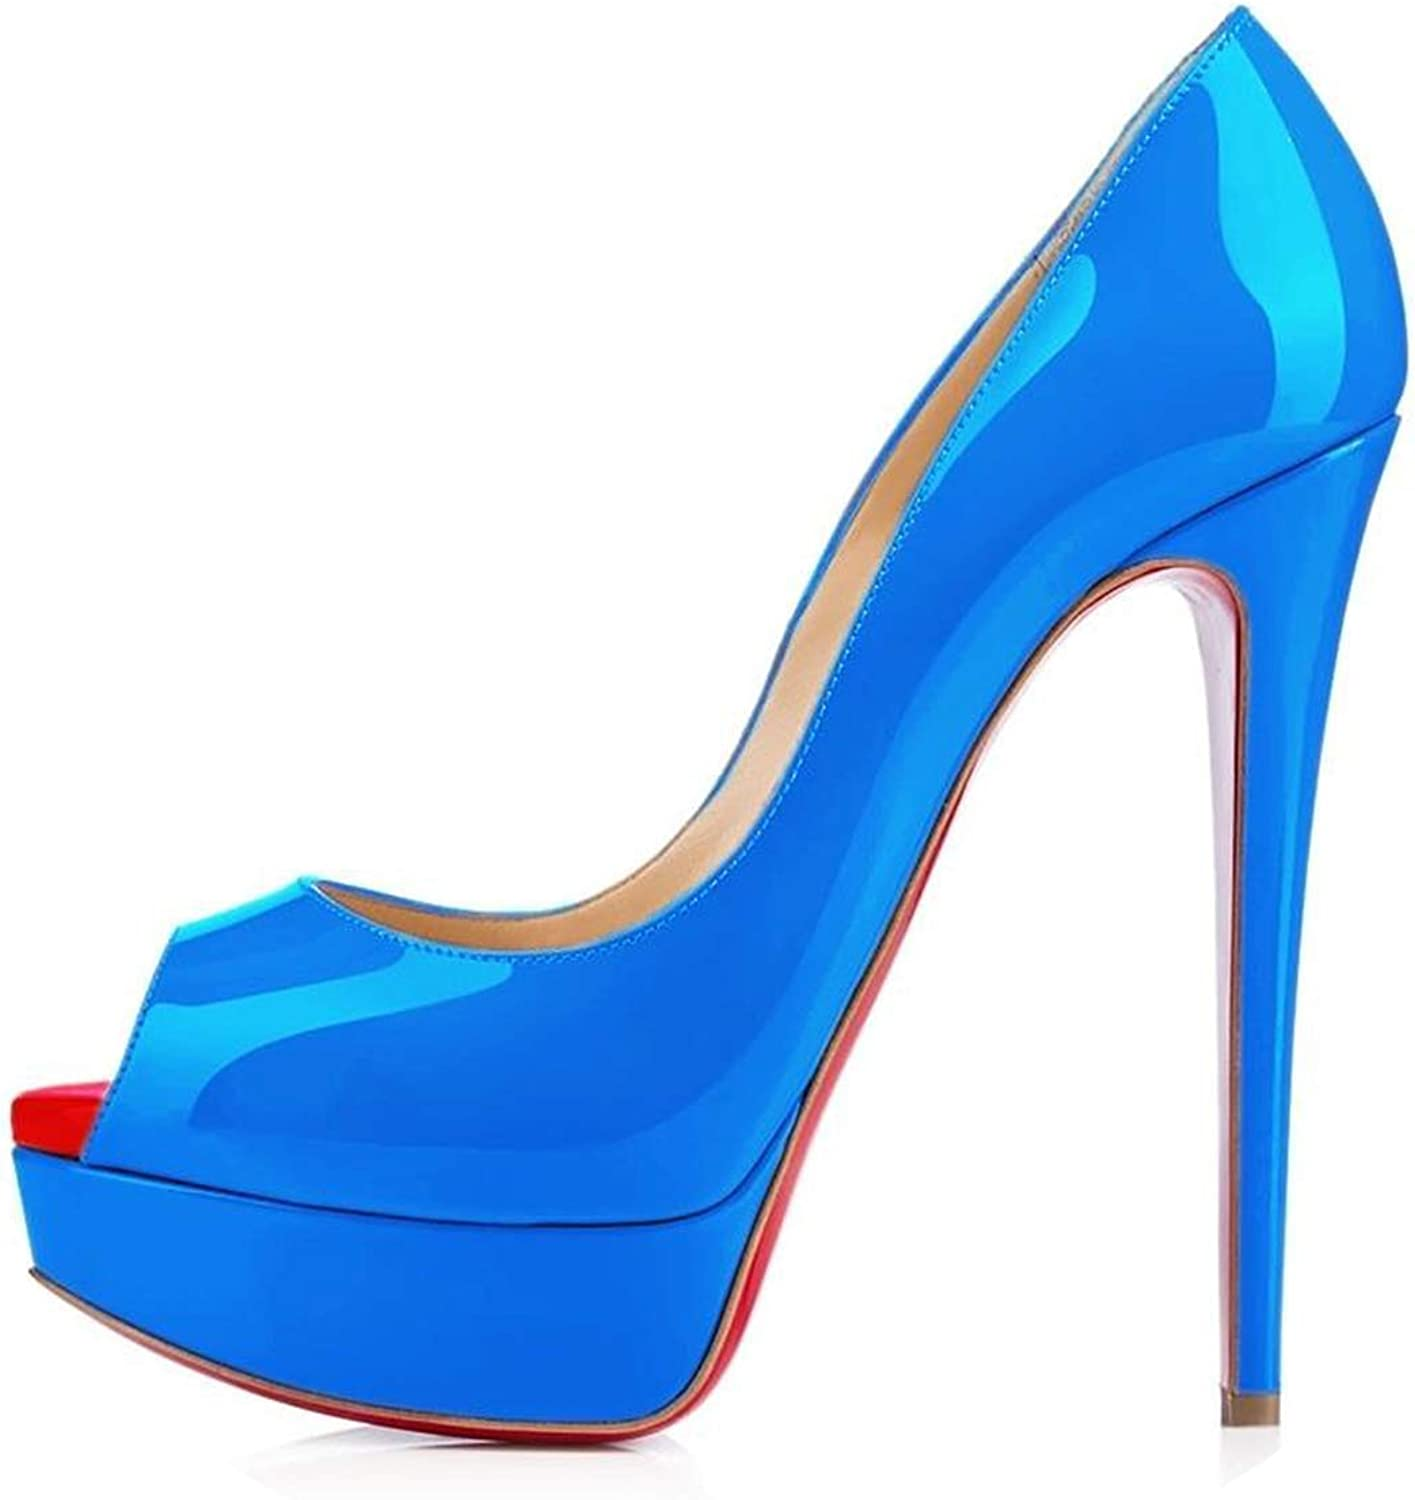 LAIGEDANZI Womens Pumps Leather Wedges Platform Stiletto High Heels Open Toe Sexy Party shoes,bluee,5